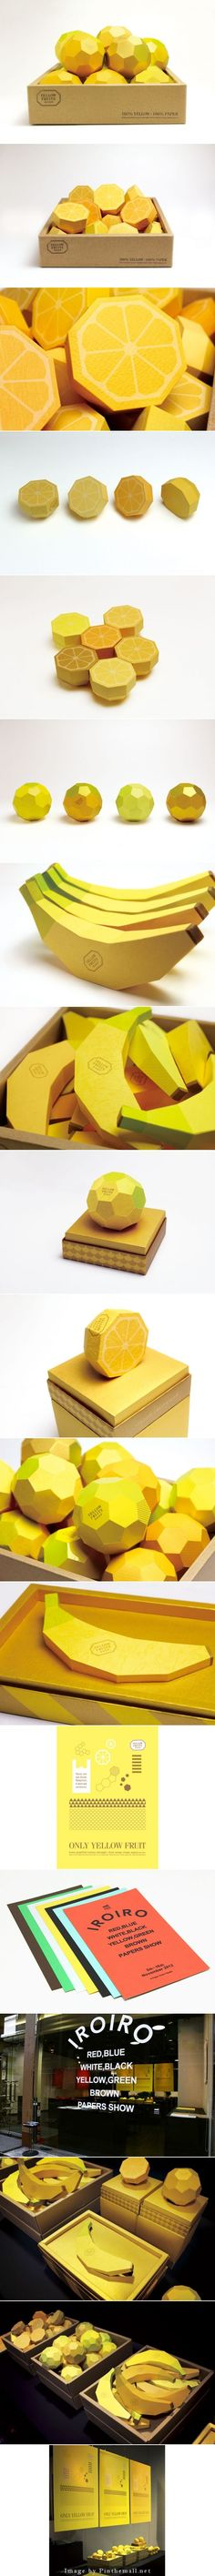 Some really cool yellow fruit #packaging #designs for the Irioro papers show by Safari Design